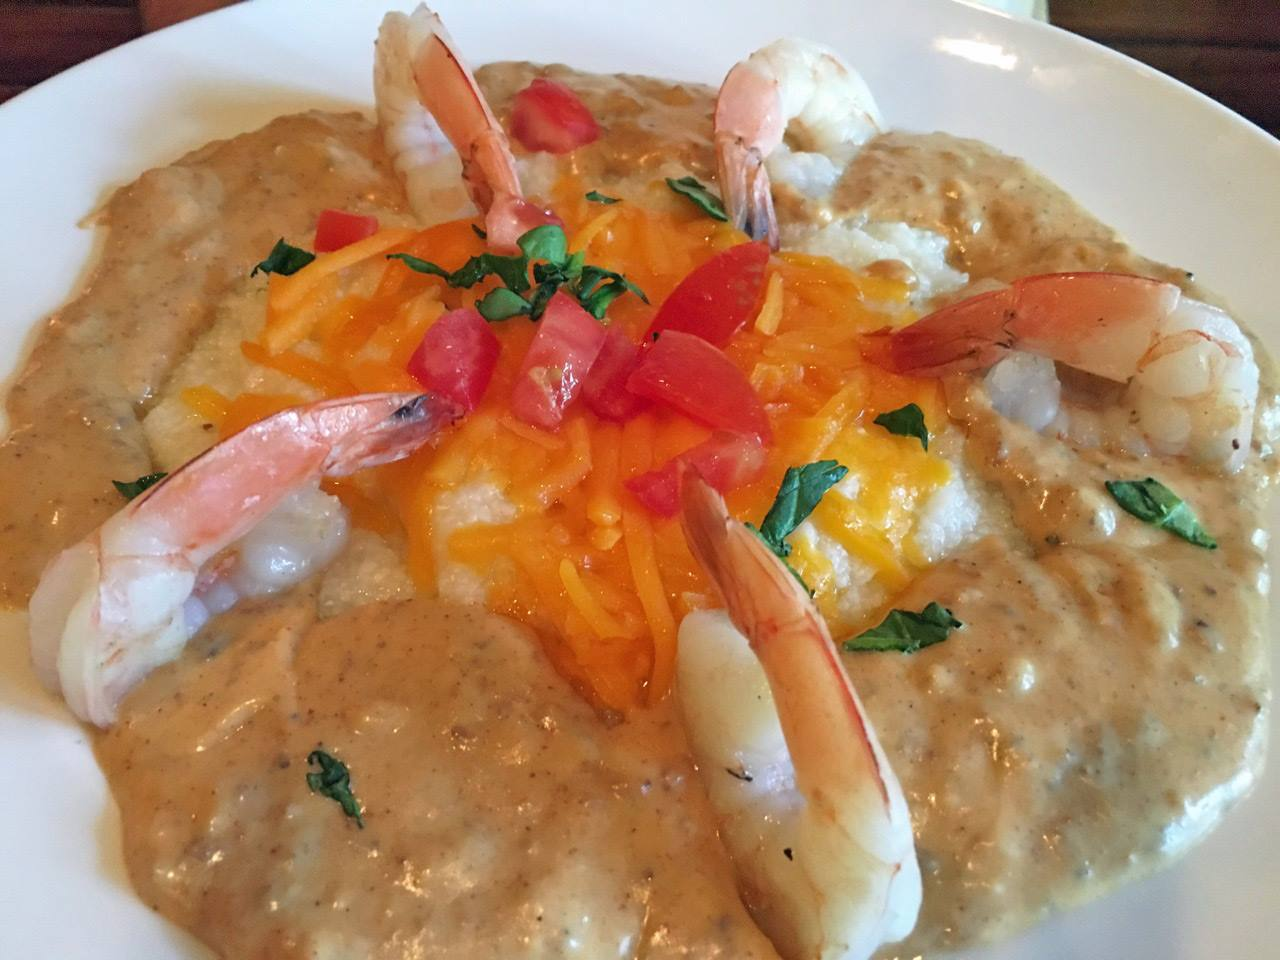 Shrimp & Grits at The Tap Room - Hollander Hotel